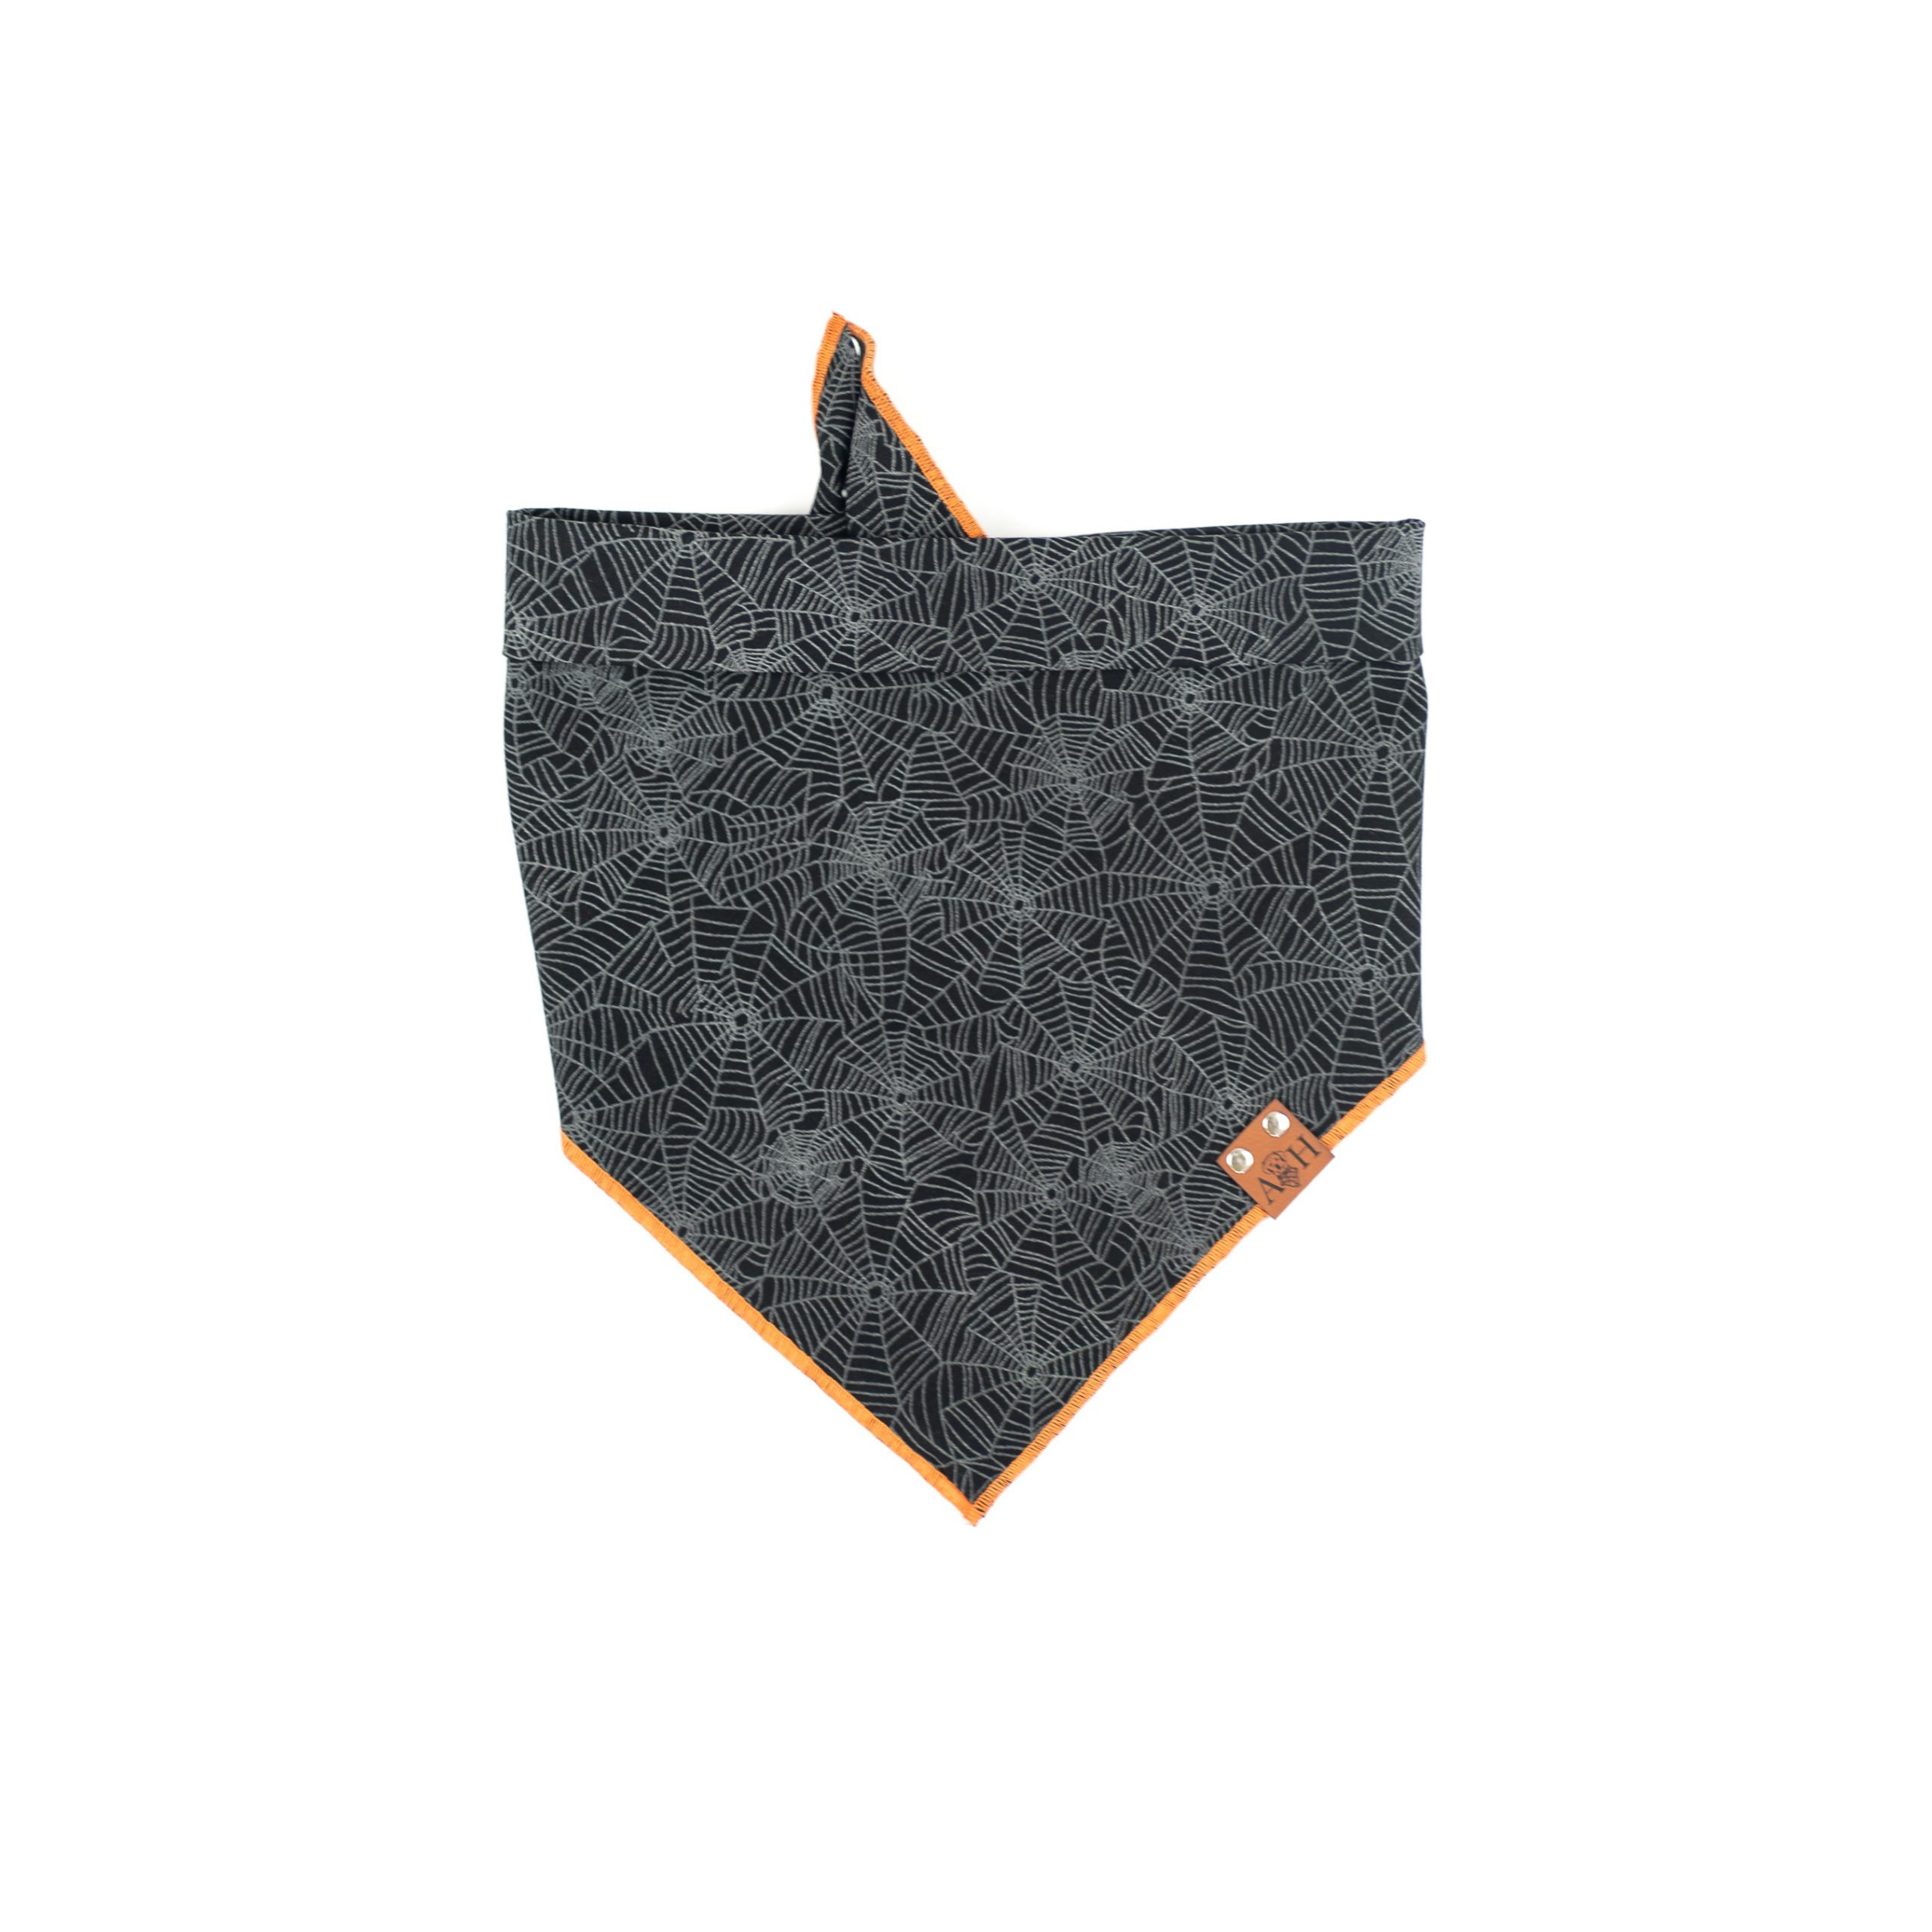 Glow in the dark spider web with orange accent dog bandana